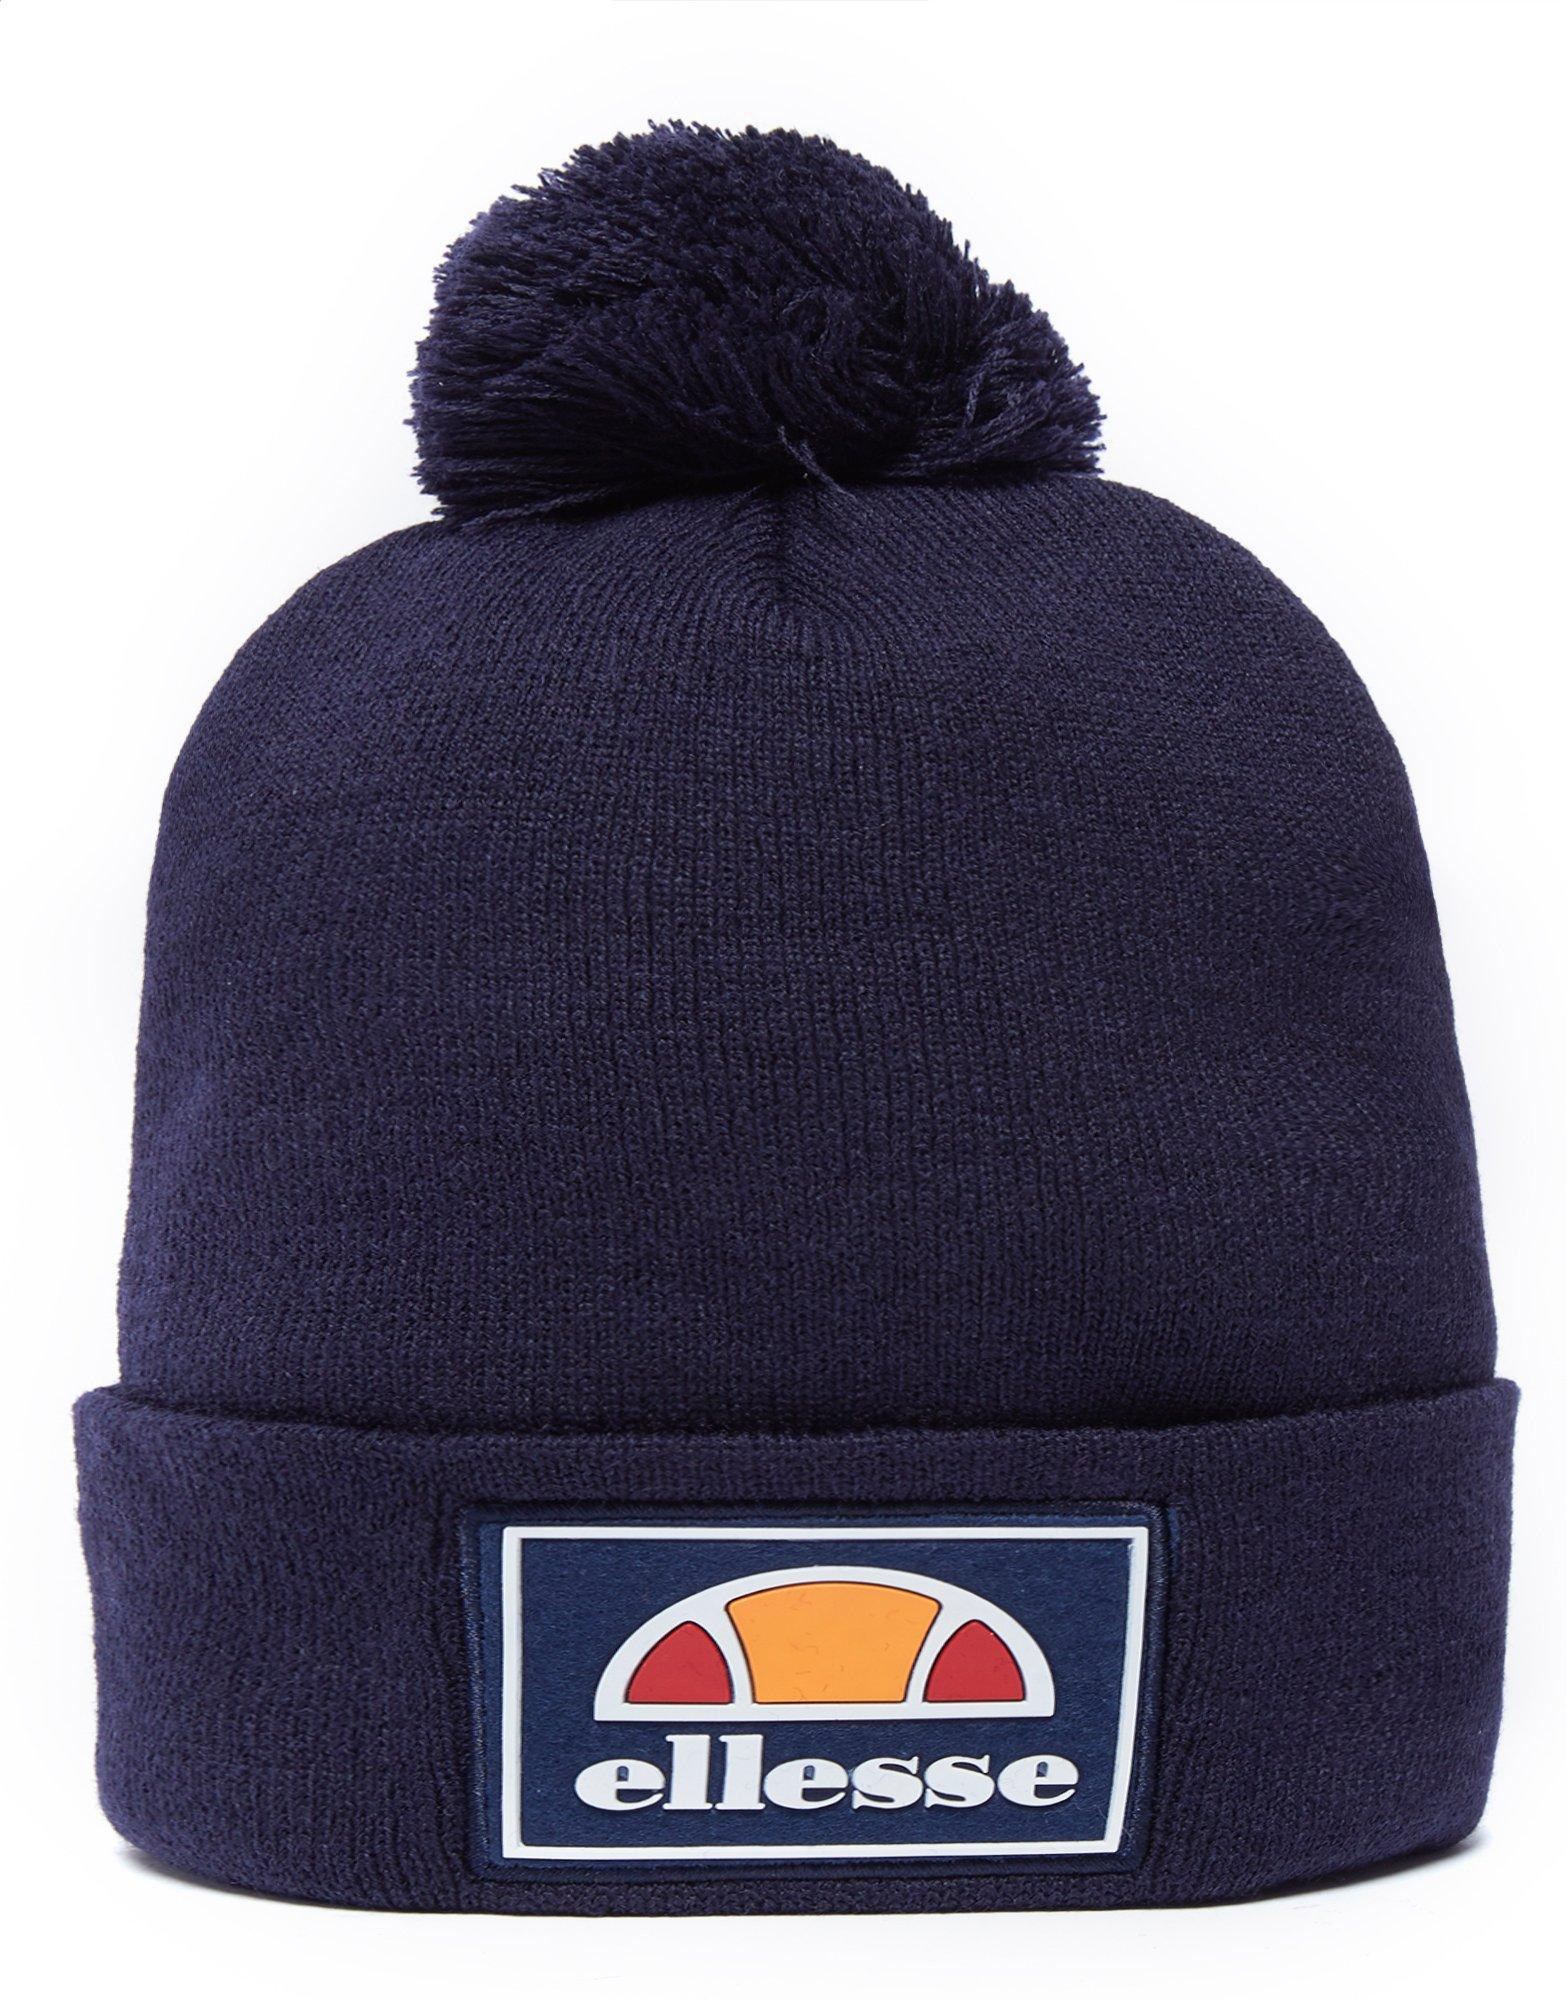 a0814498 Ellesse Patch Pom Pom Beanie Hat in Blue for Men - Lyst